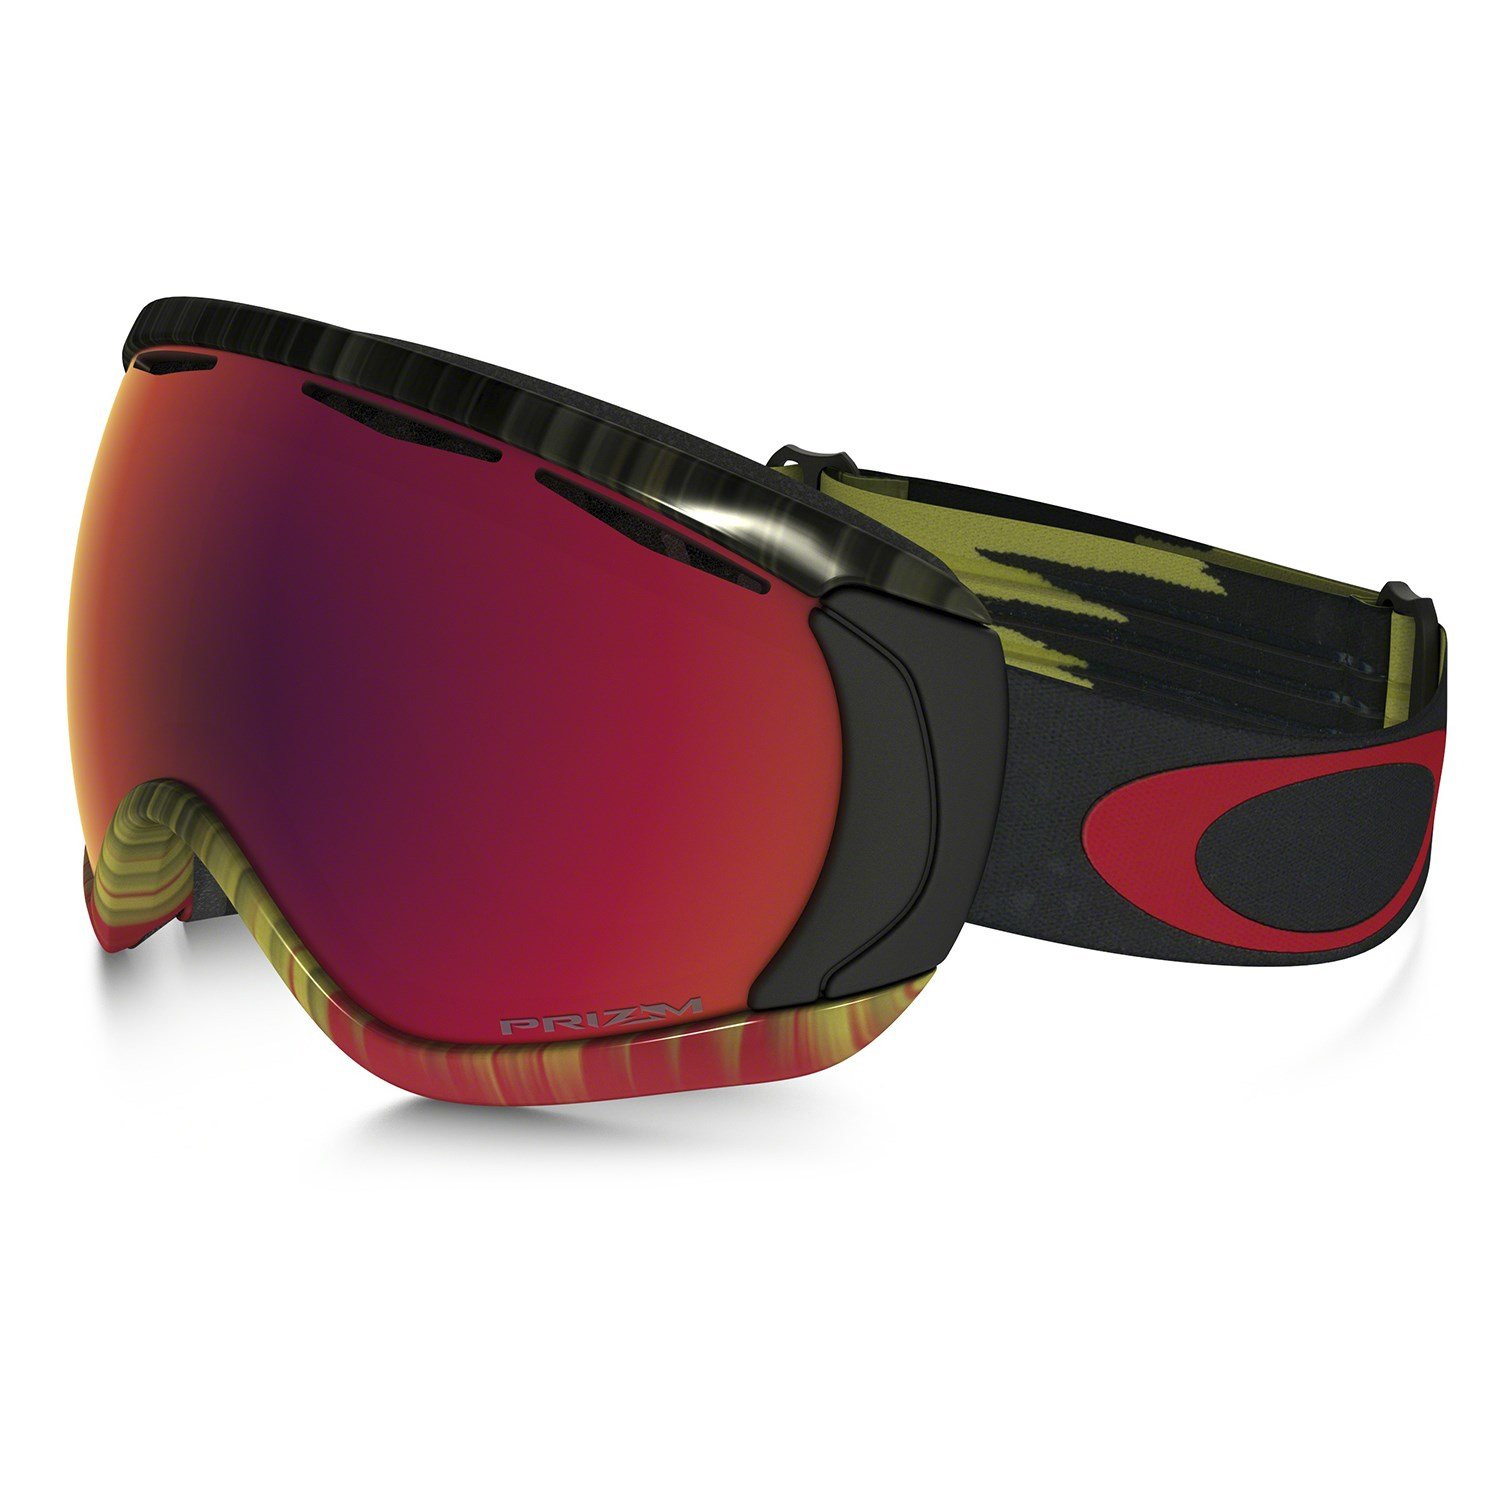 new oakley goggles  Oakley Canopy Asian Fit Goggles